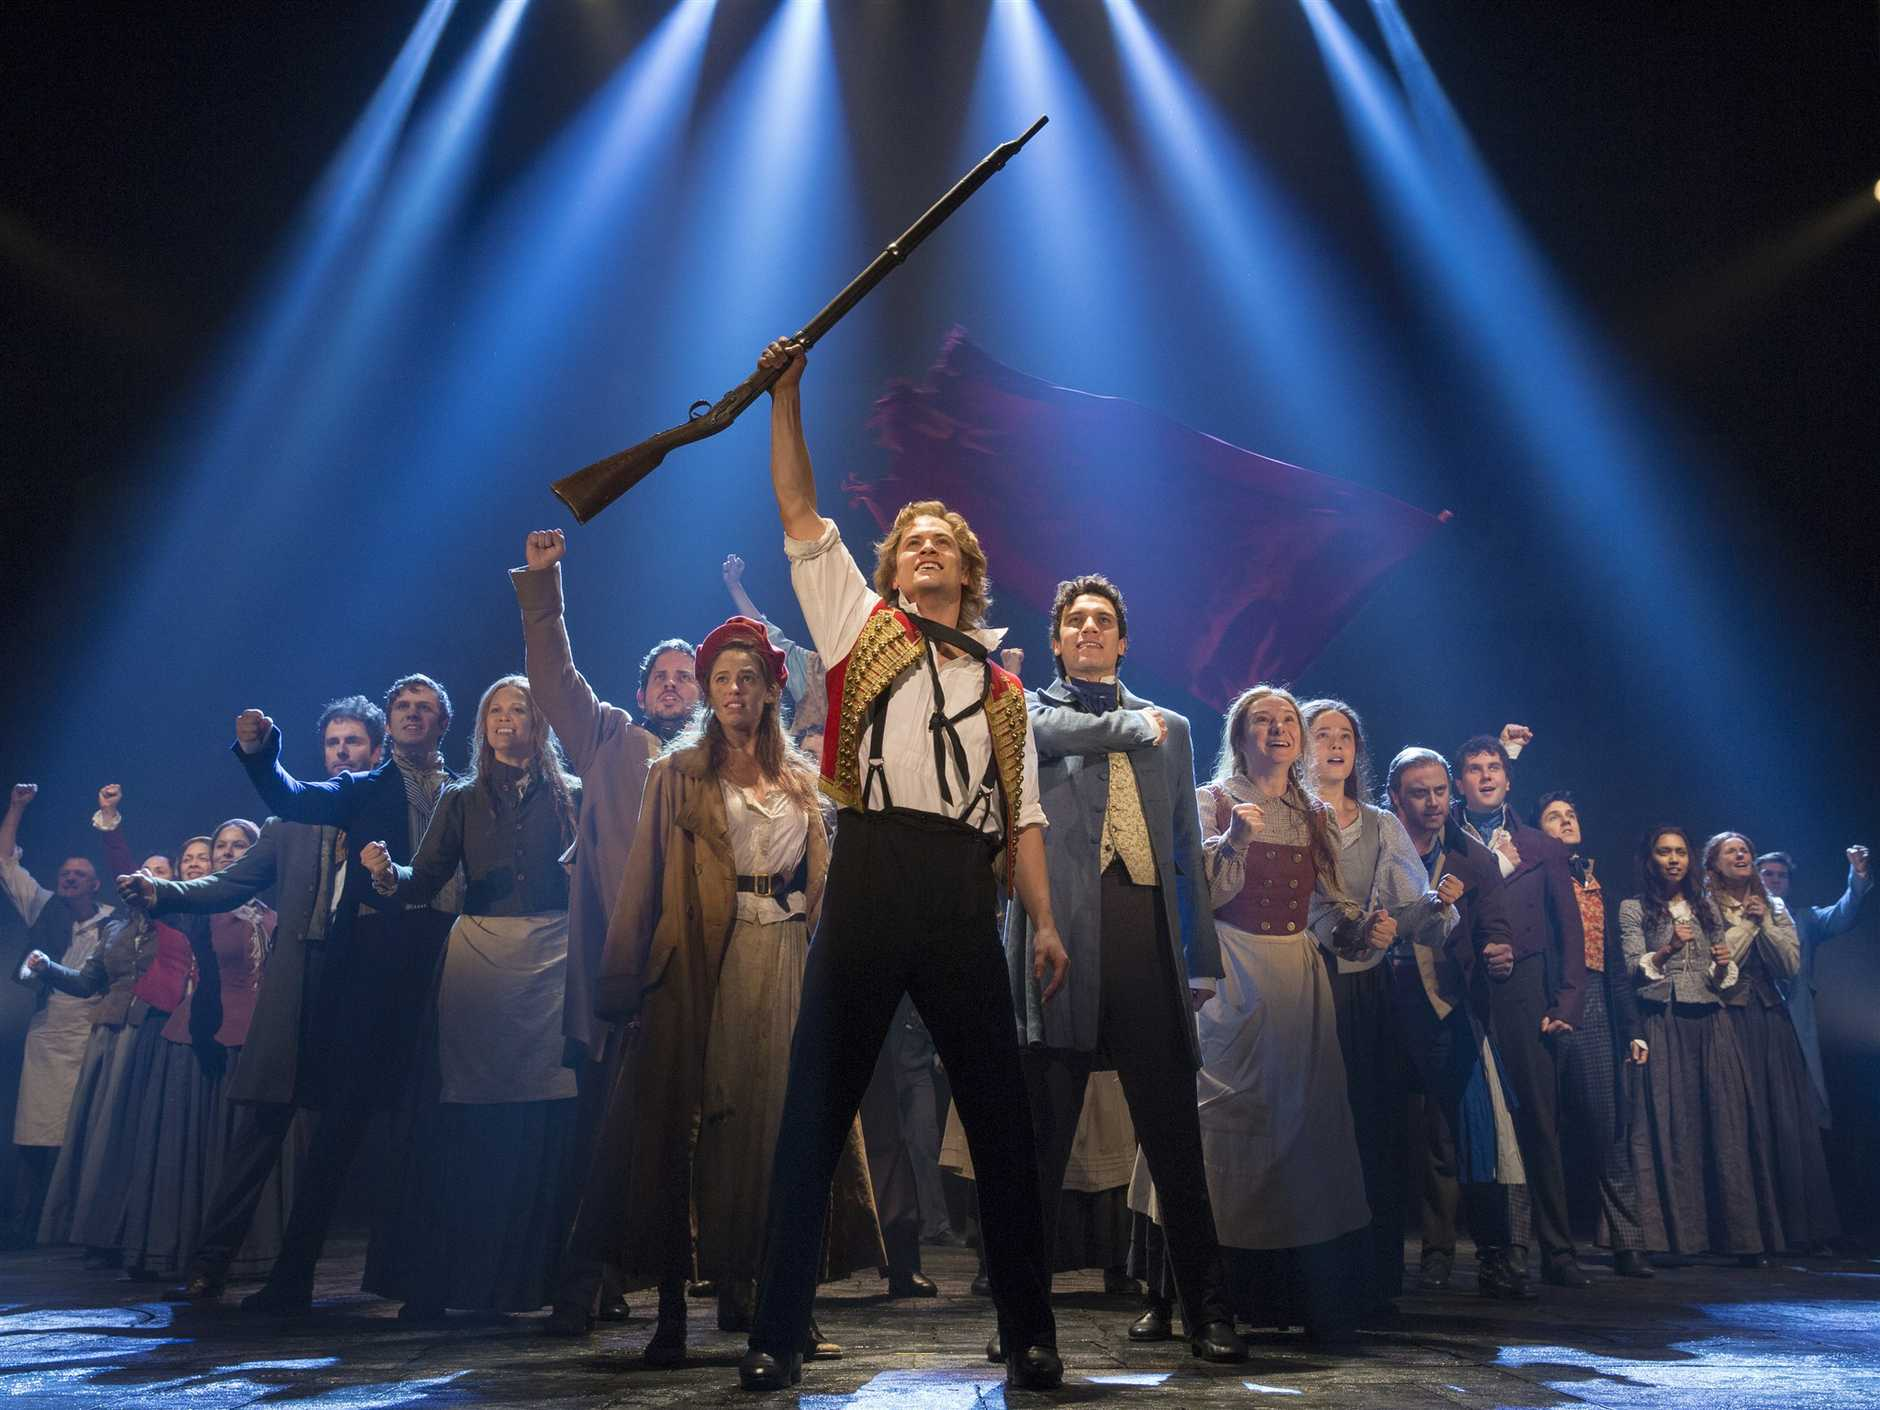 A scene from the musical Les Miserables.